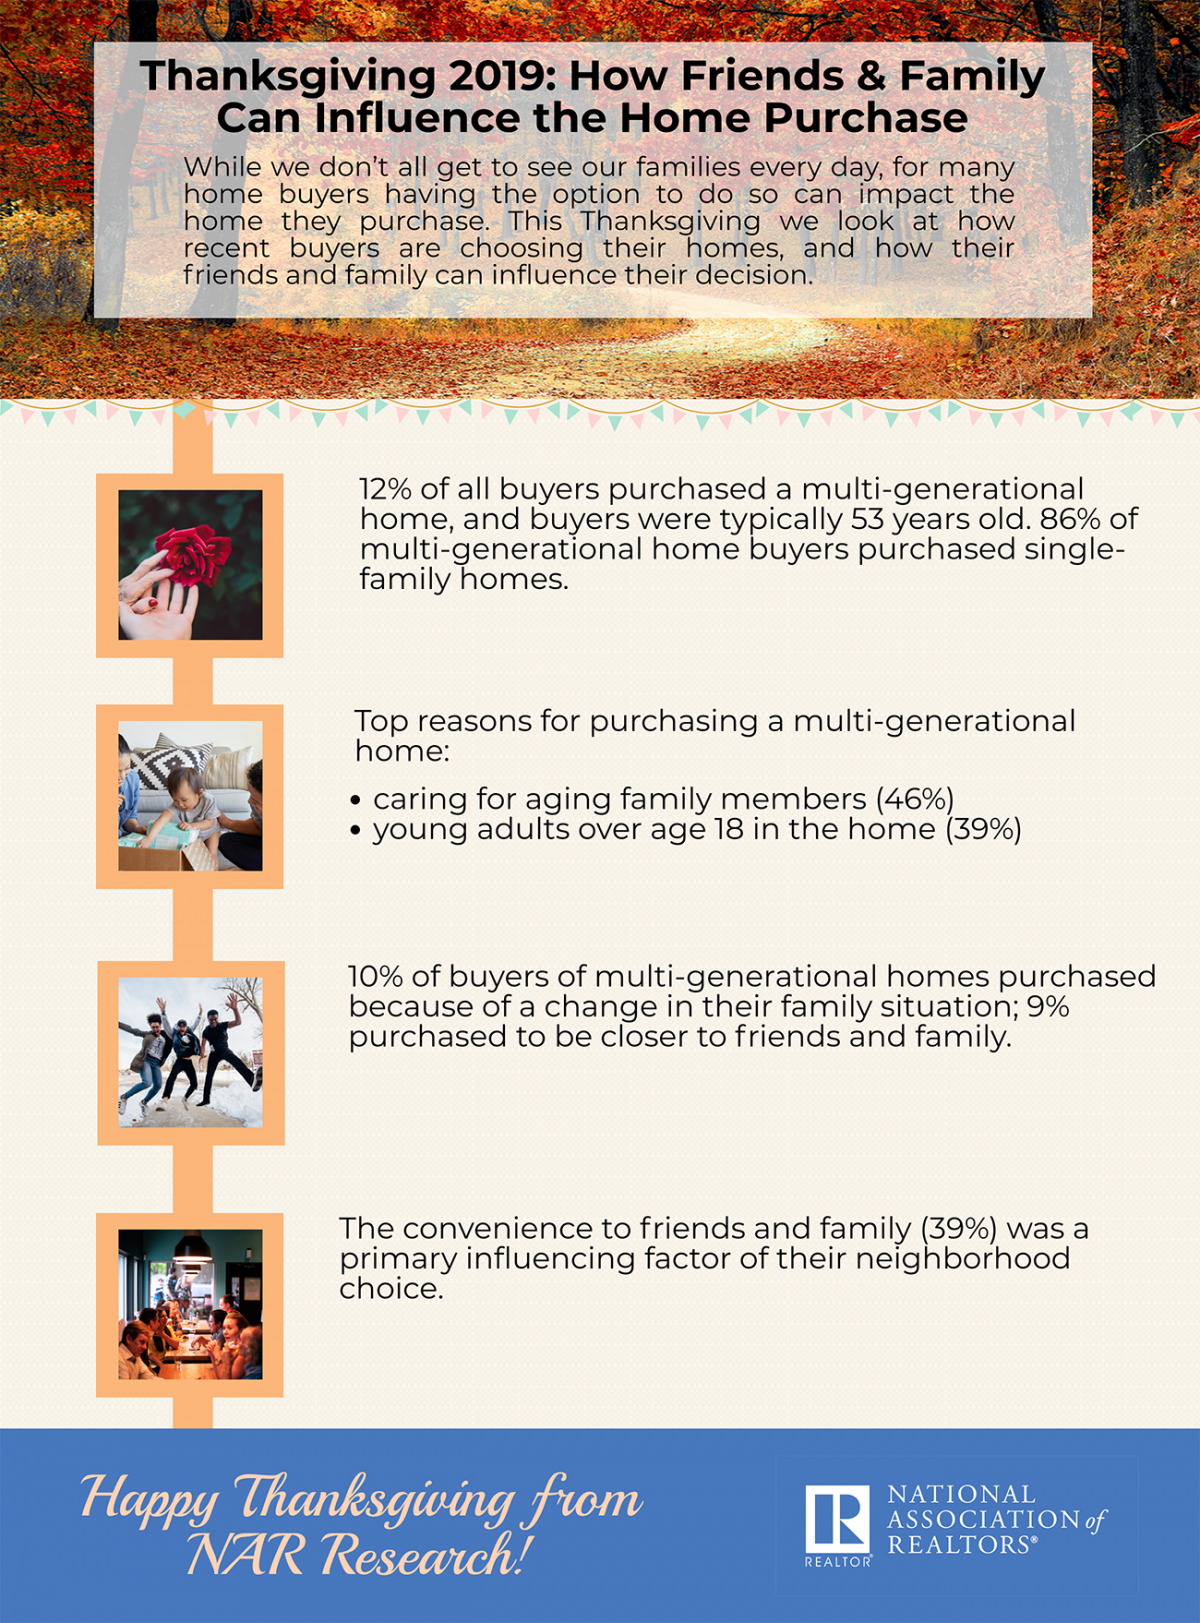 Infographic: Thanksgiving 2019: How Friends and Family Can Influence the Home Purchase